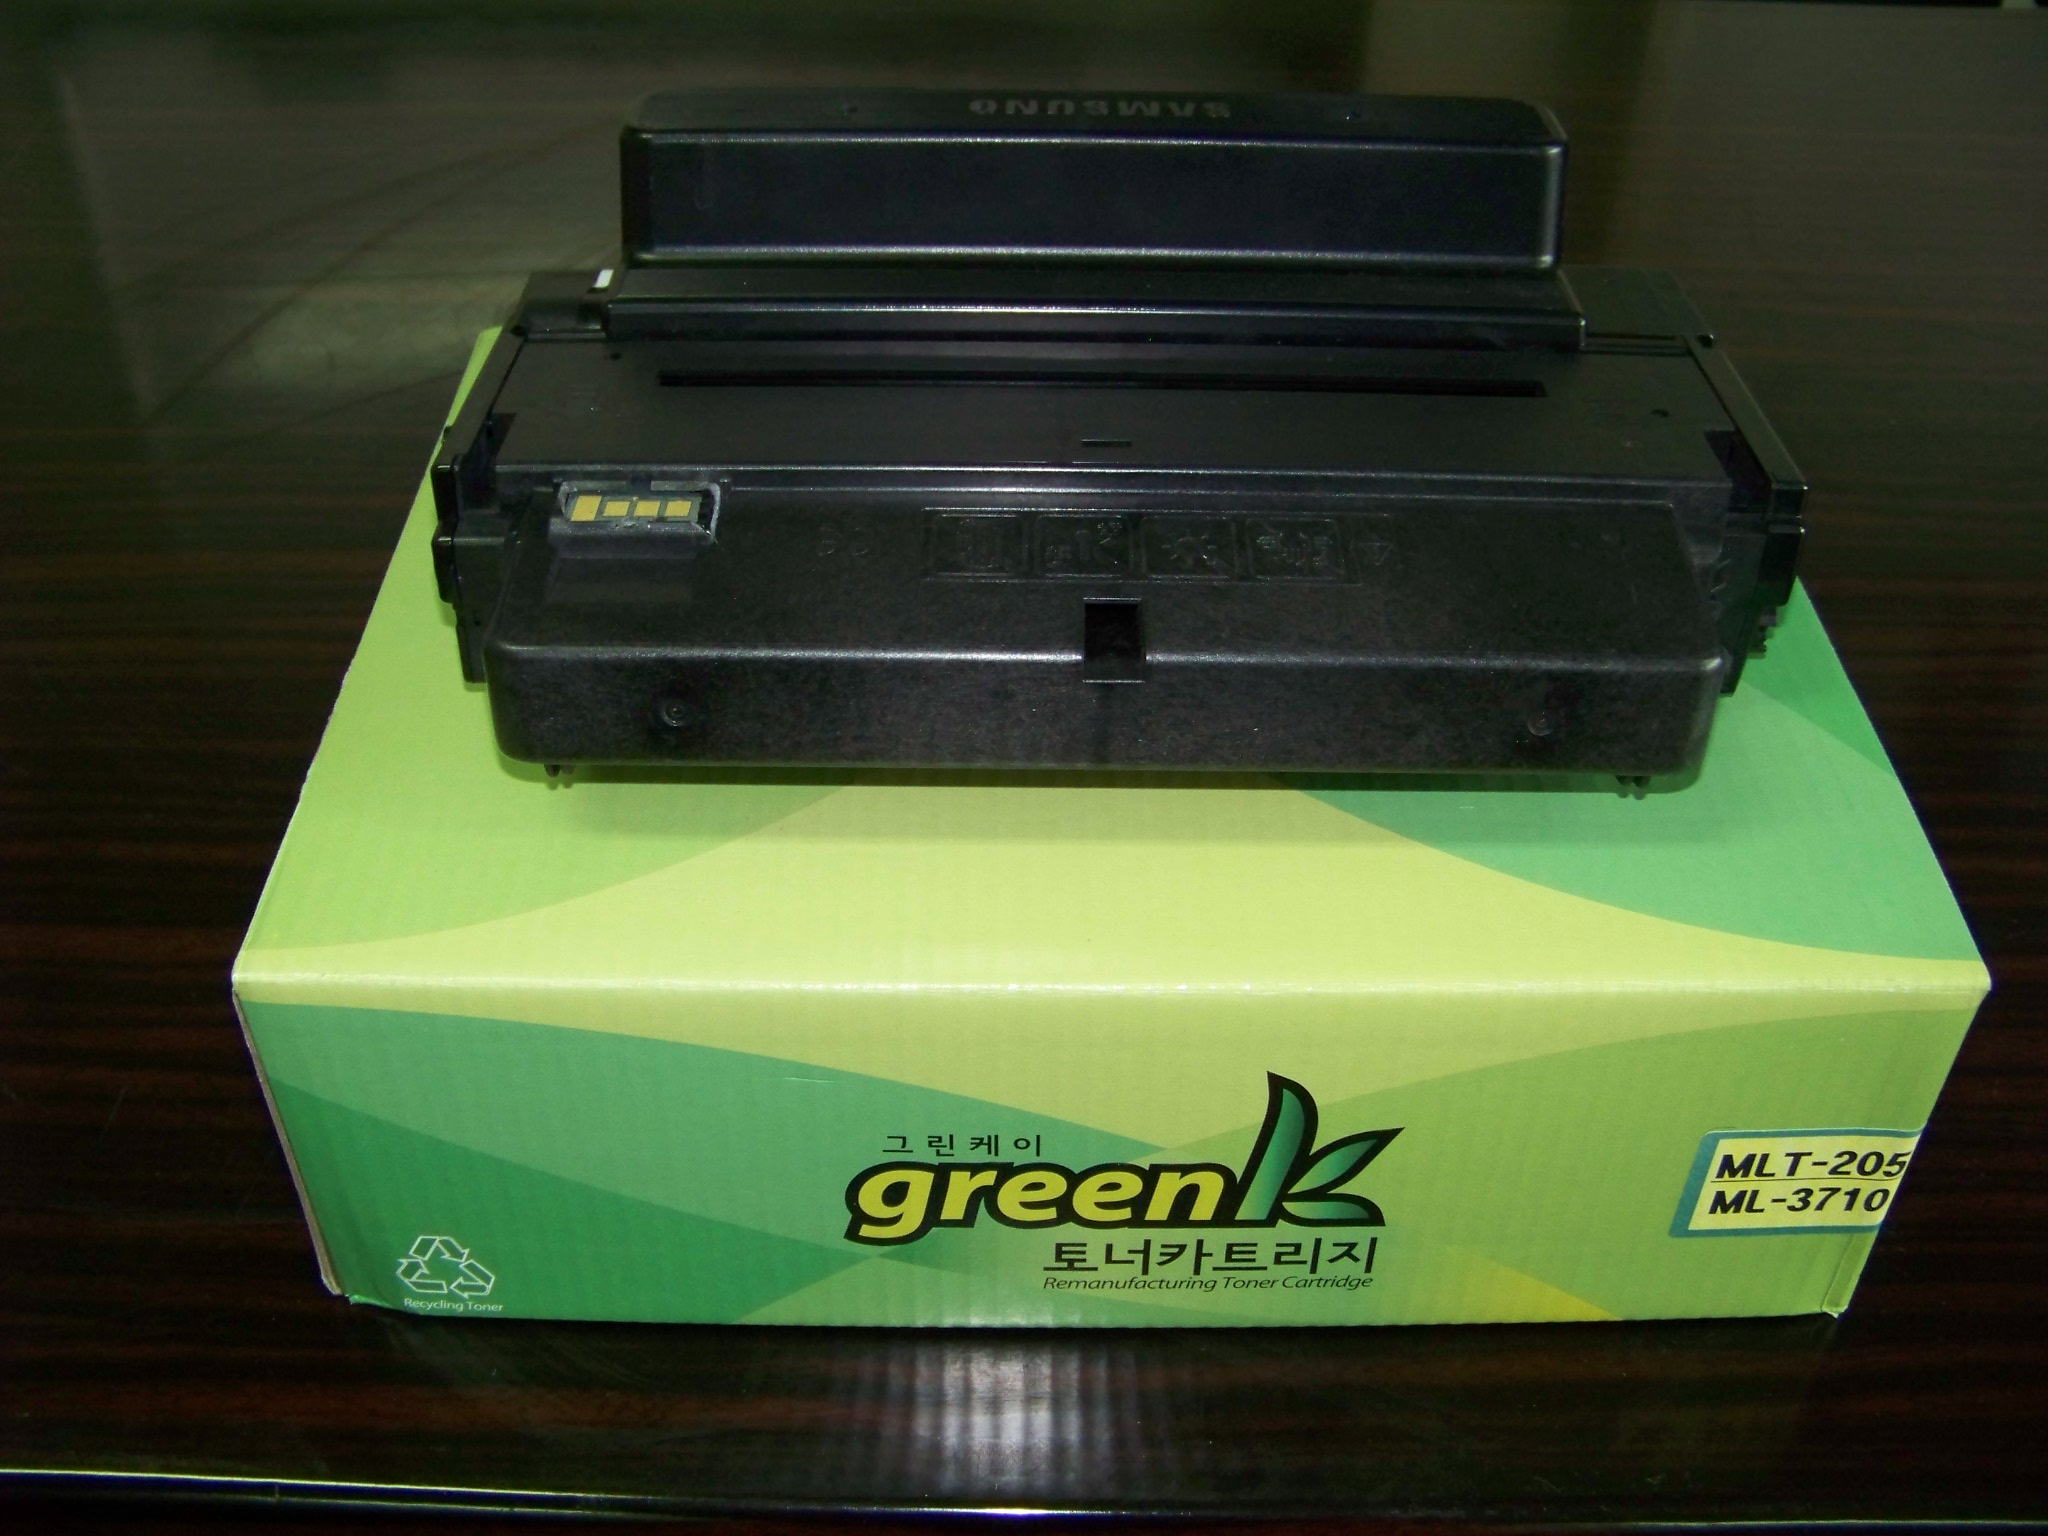 greenK MLT-205